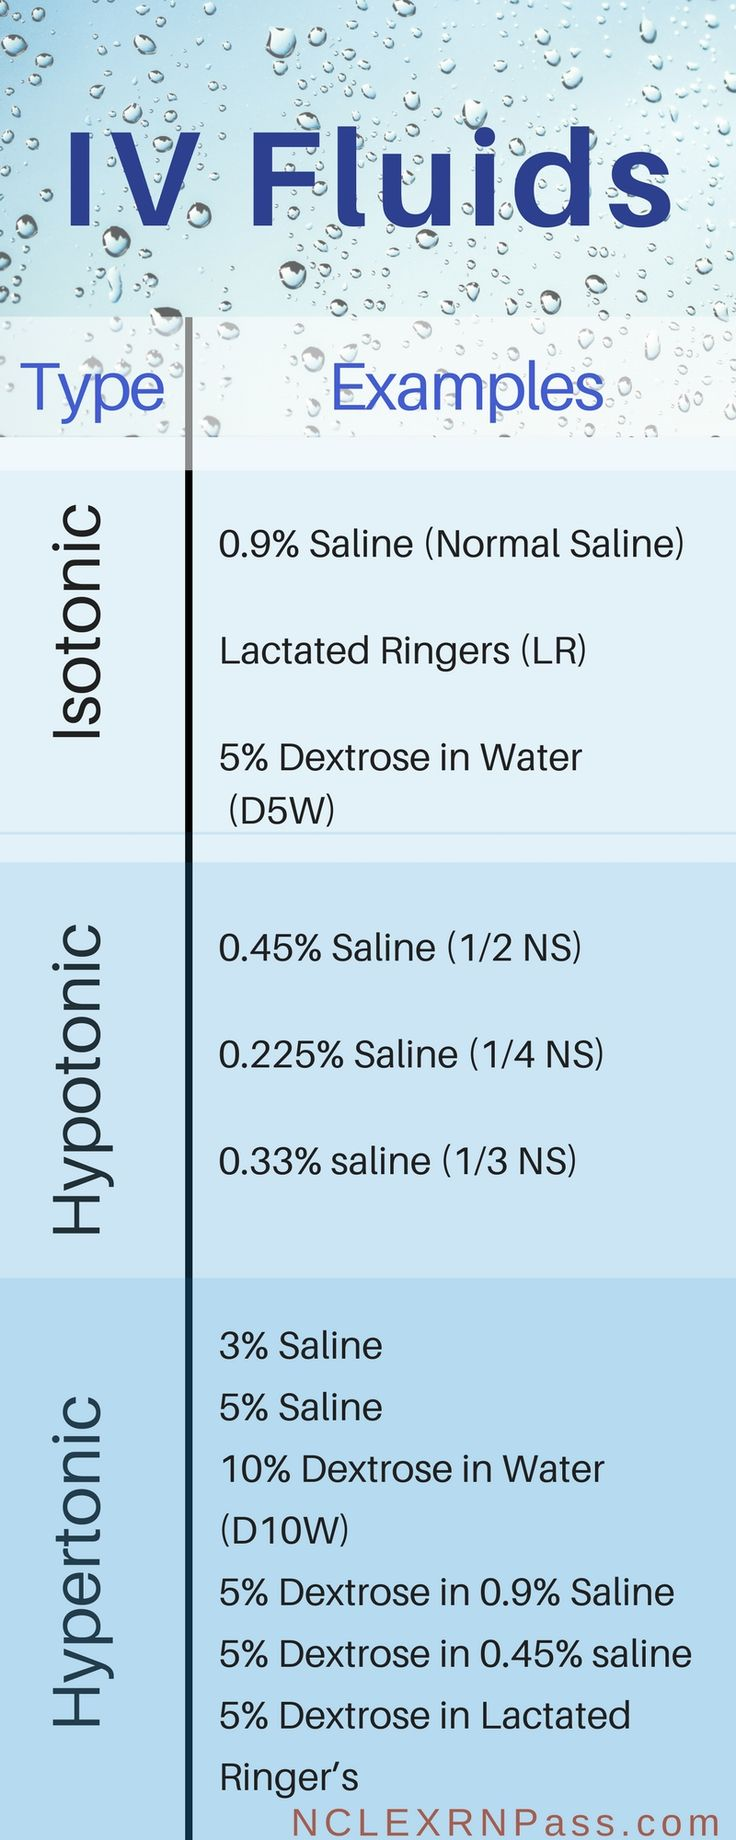 isotonic - most close to blood in composition chemically